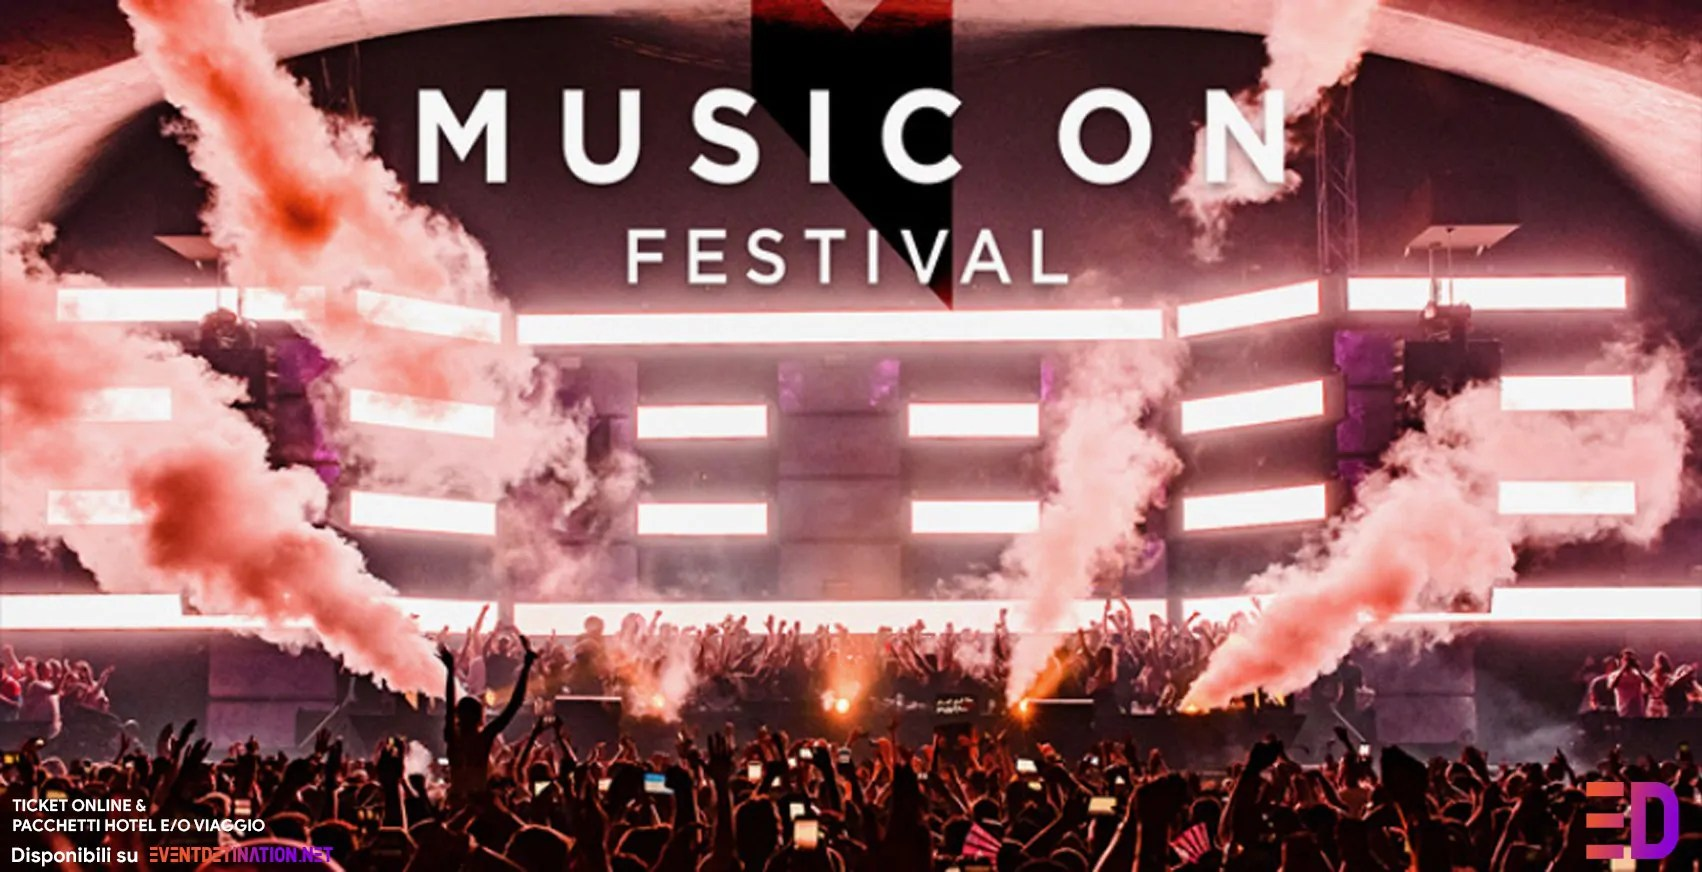 MUSIC ON Festival 2020 Amsterdam – Week End 09 e 10 Maggio 2020